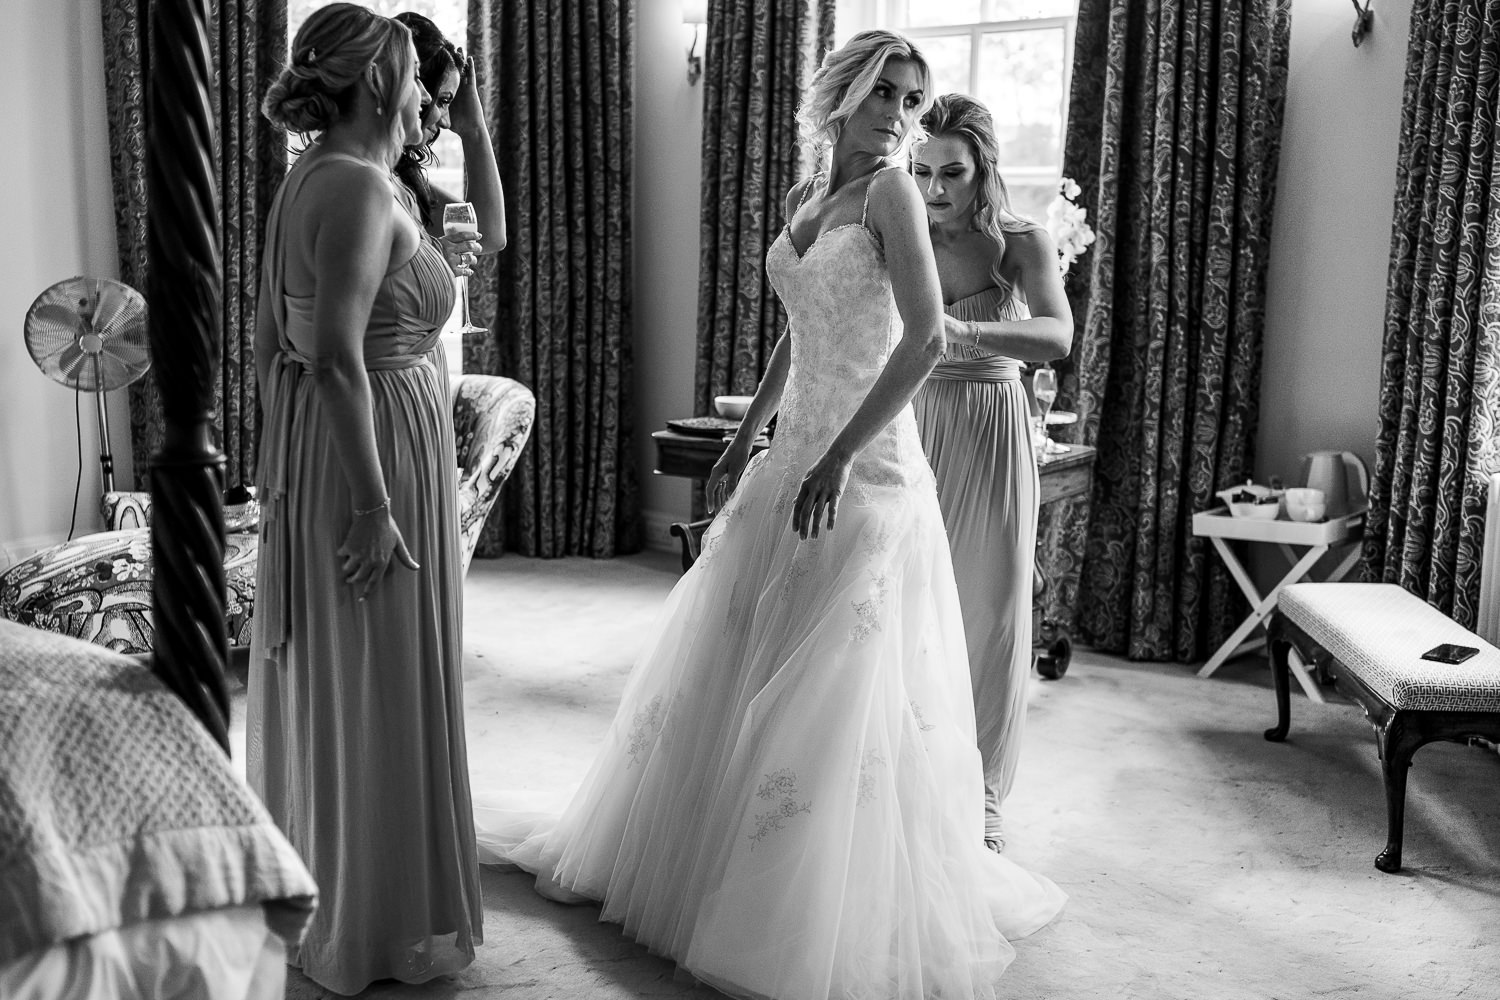 Bride putting on her dress with her bridesmaids